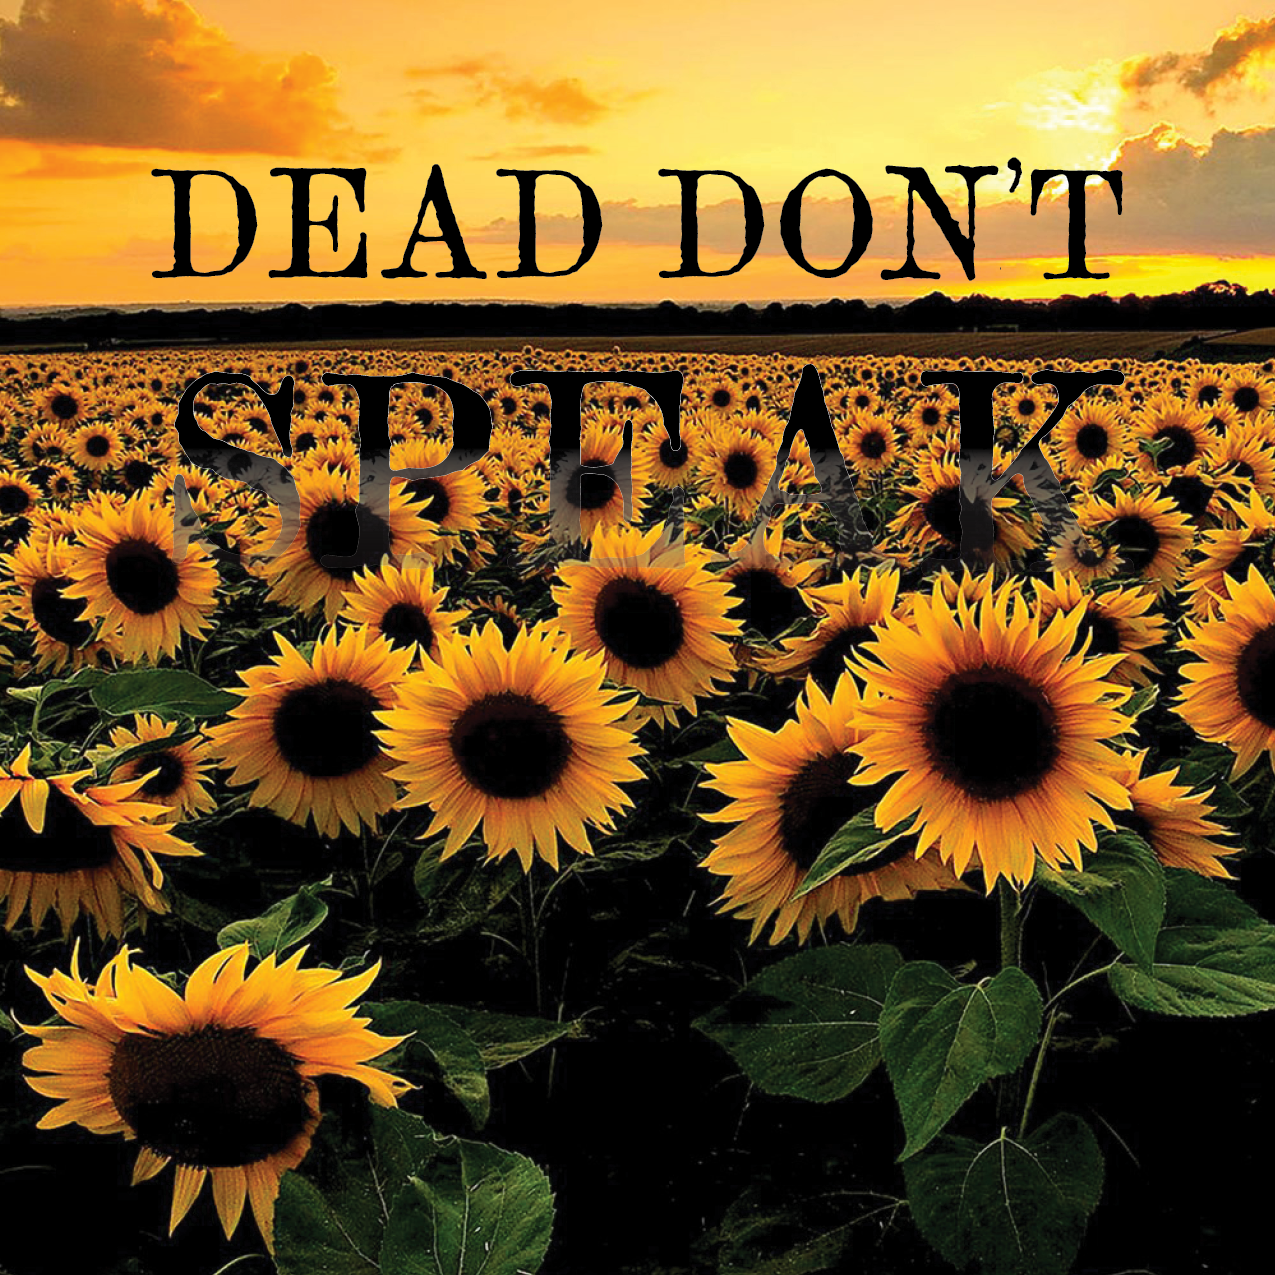 DEAD DON'T SPEAK - A feature-length crime thriller.NEW. In 1955, when a young woman goes missing from a dusty ranching town, obsessive deputy sheriff Alice Skuyler's investigation leads to a history of abducted girls and Alice's confrontation with her own complicated past. COMPS: Silence of the Lambs, ZodiacSELECT ACCOLADES2019 QUARTER-FINALIST | NICHOLL FELLOWSHIP2019 SECOND ROUNDER | AUSTIN FILM FESTIVAL